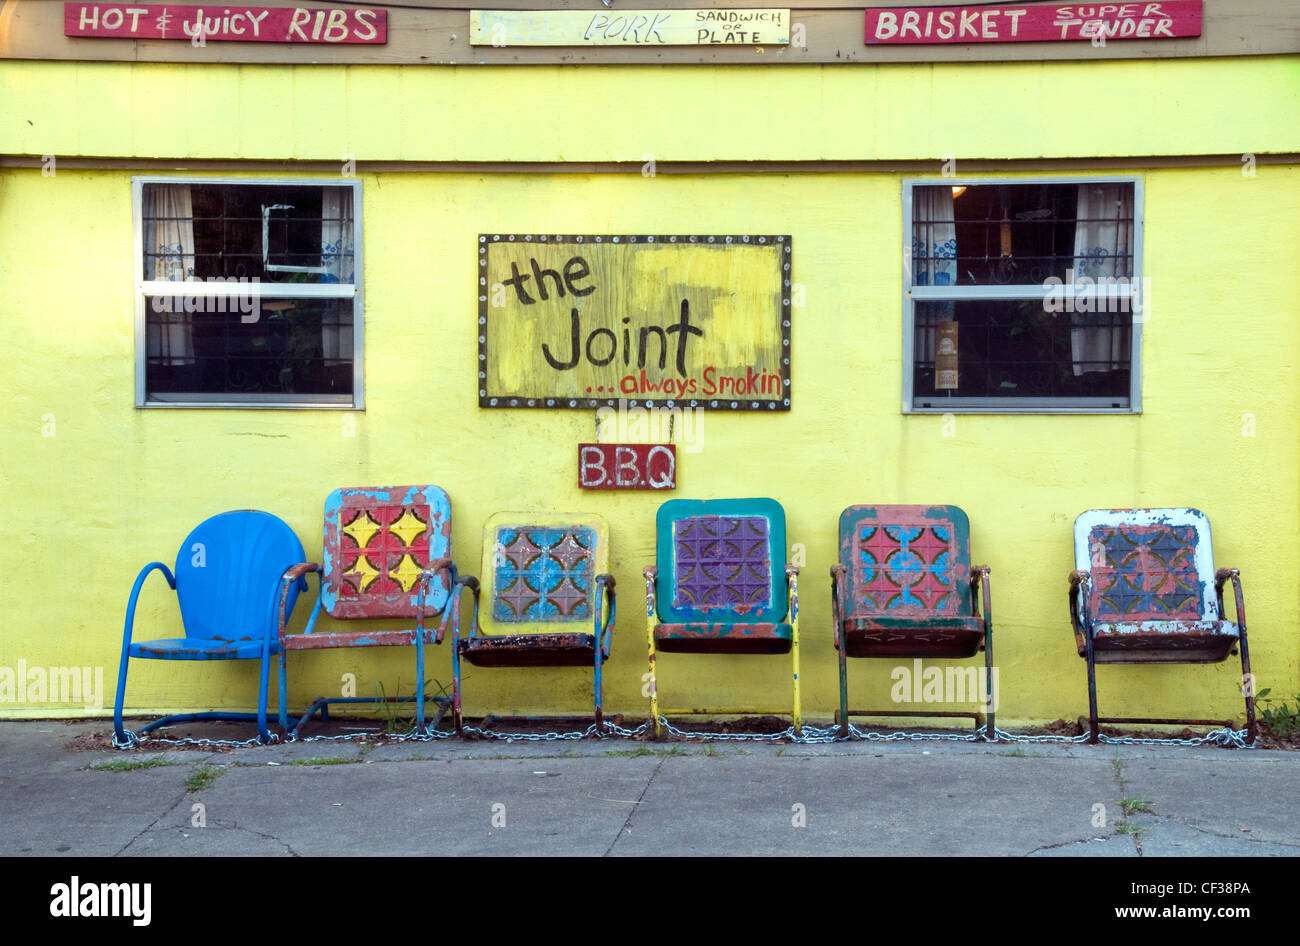 The exterior of a barbecue restaurant located in the residential district of Bywater, in New Orleans. - Stock Image